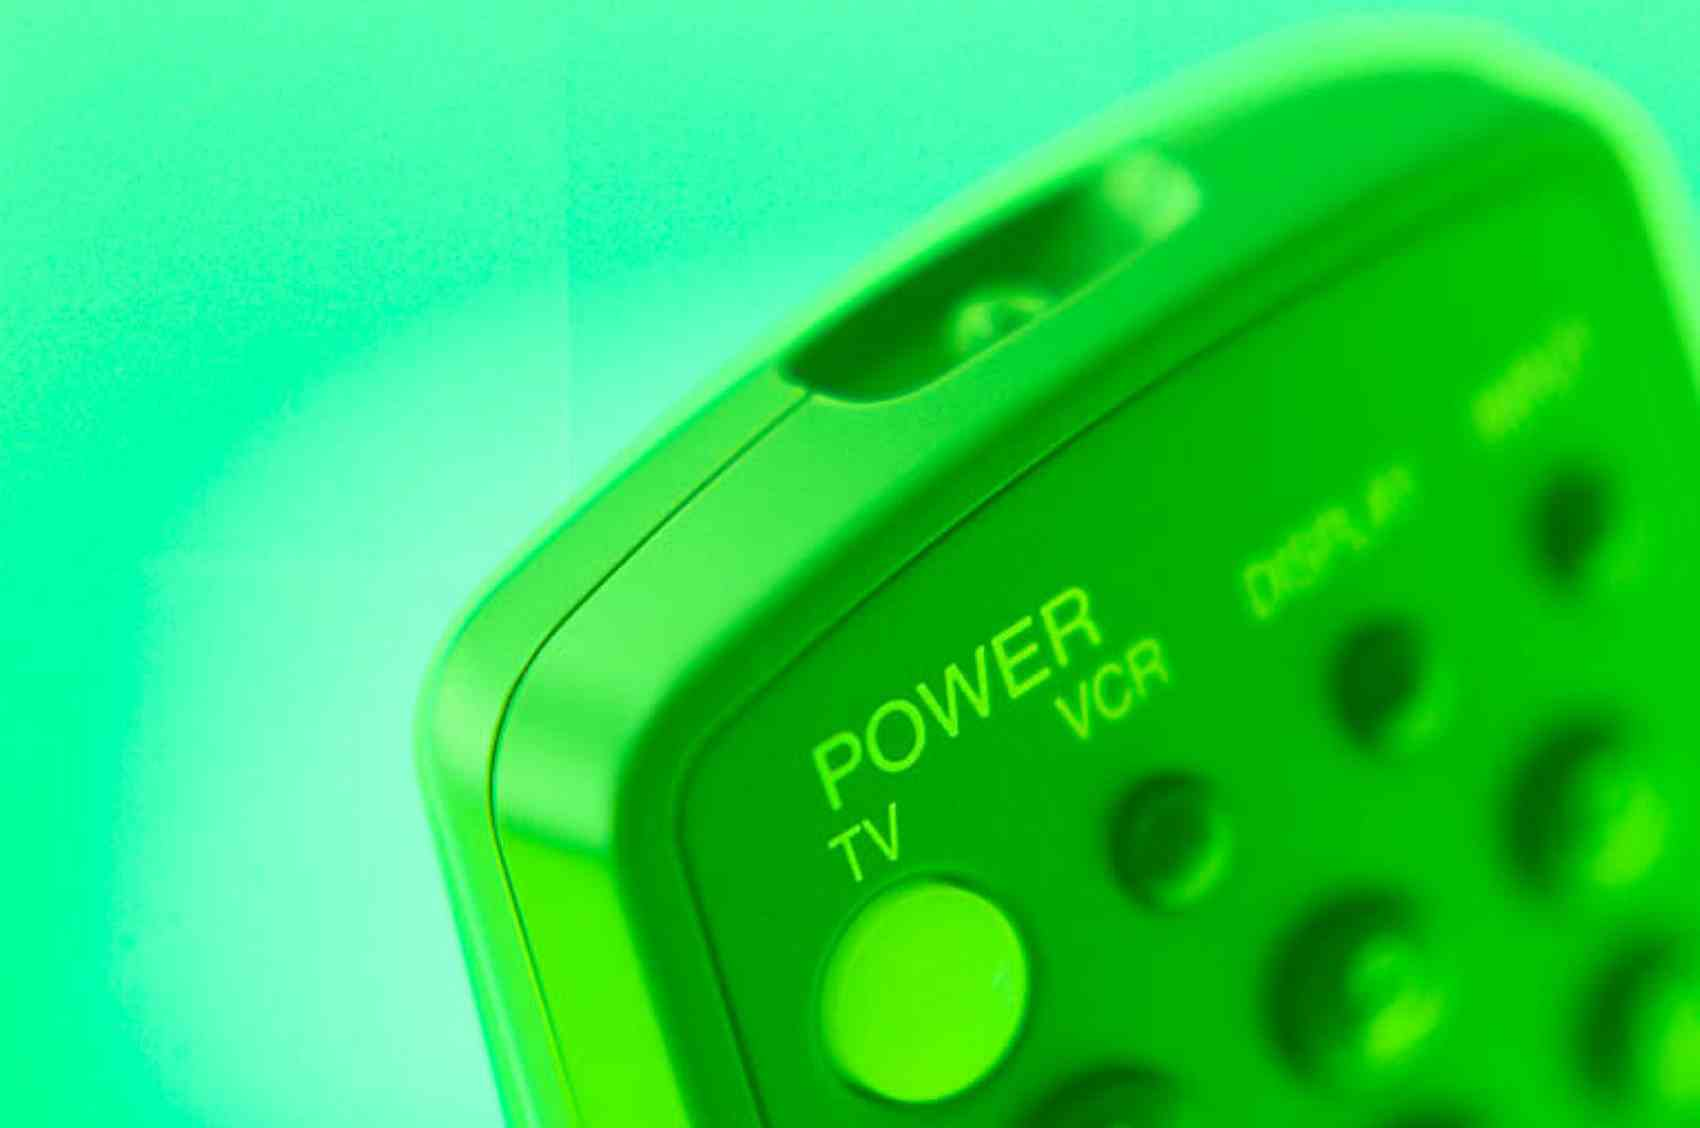 Remote control in green light.jpg